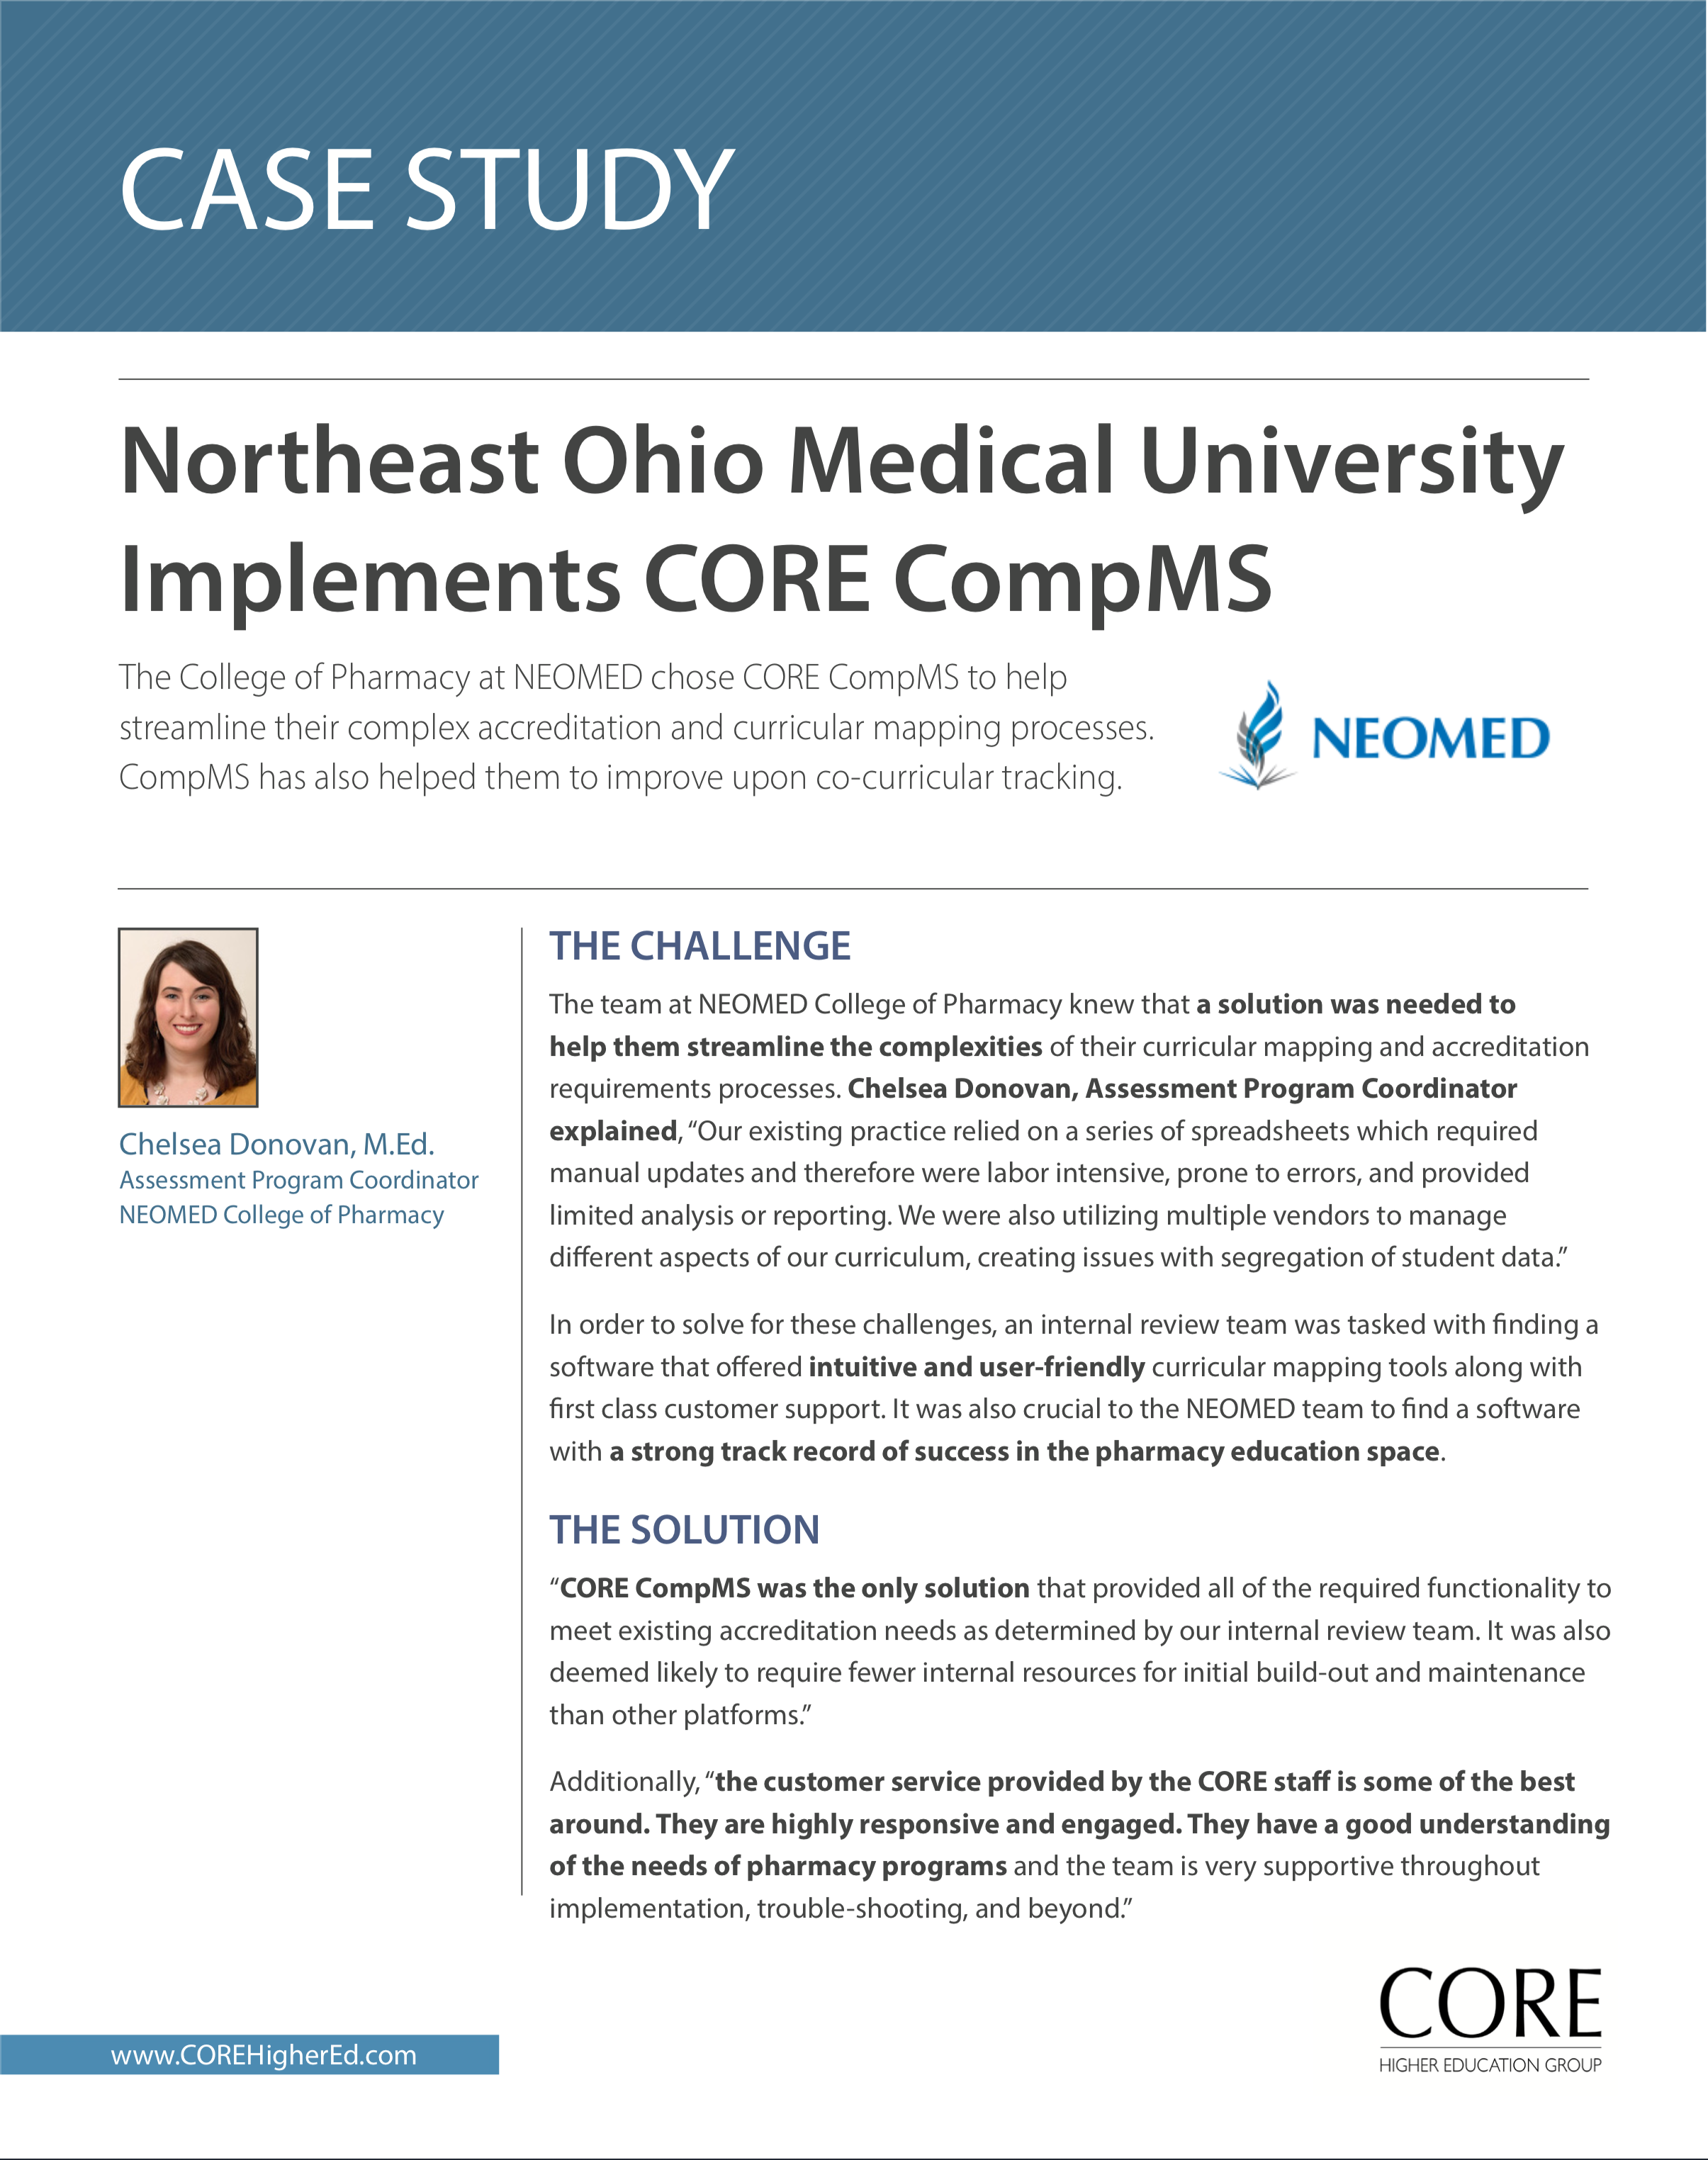 Implementation of CORE at NEOMED College of Pharmacy